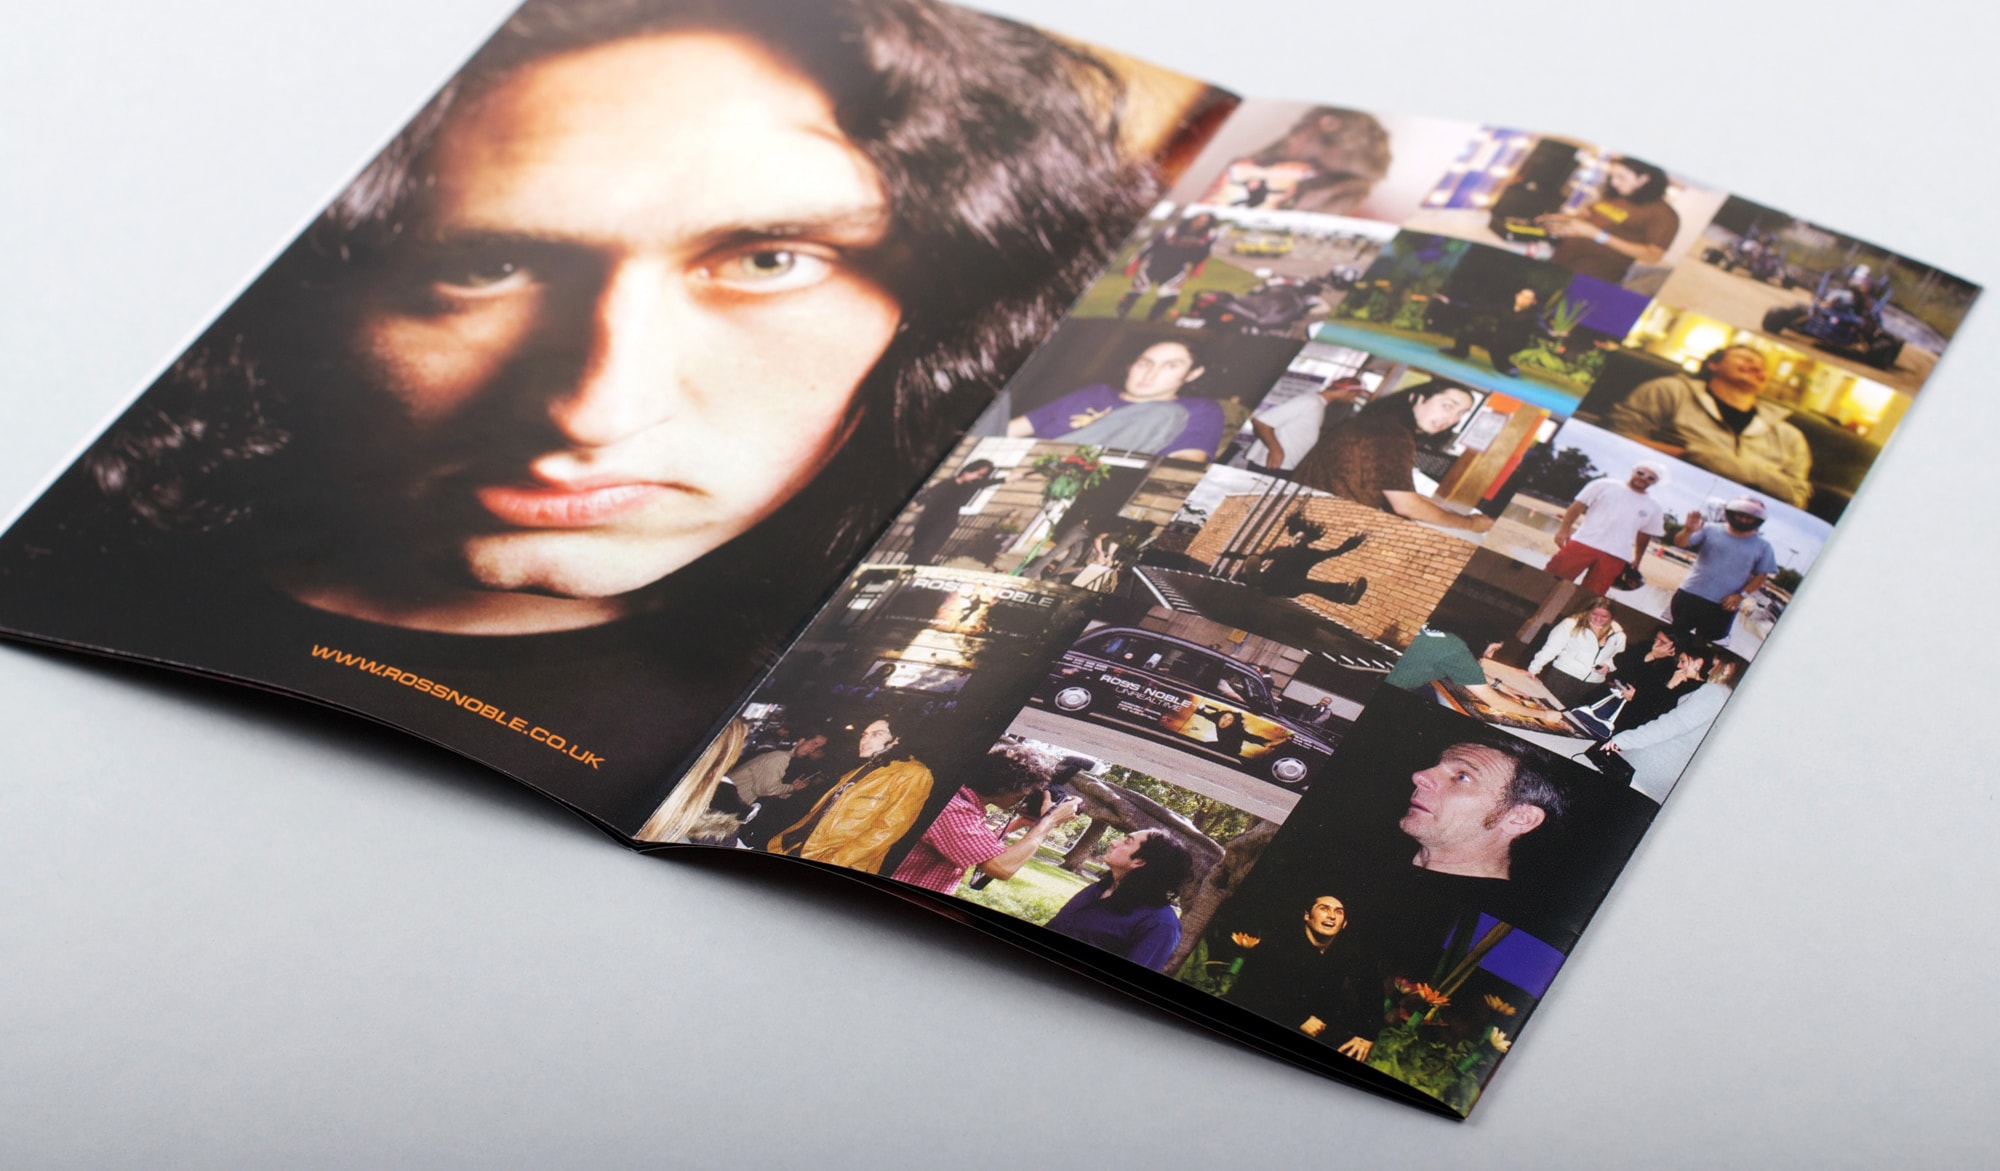 Ross Noble - Unrealtime DVD - booklet